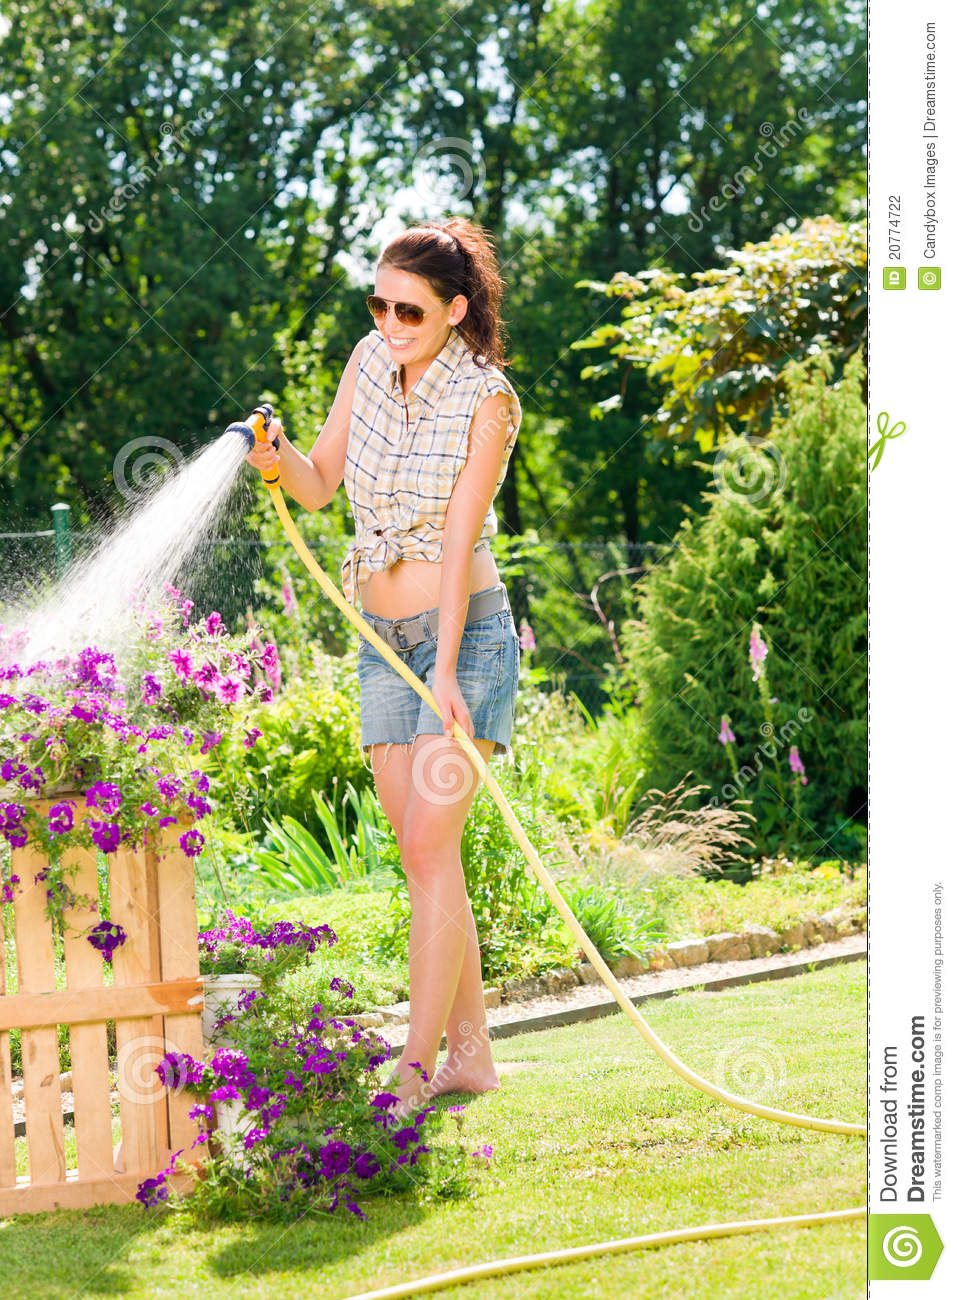 Summer Garden Smiling Woman Watering Hose Flower Stock Photo   Image Of  Happy, Care: 20774722